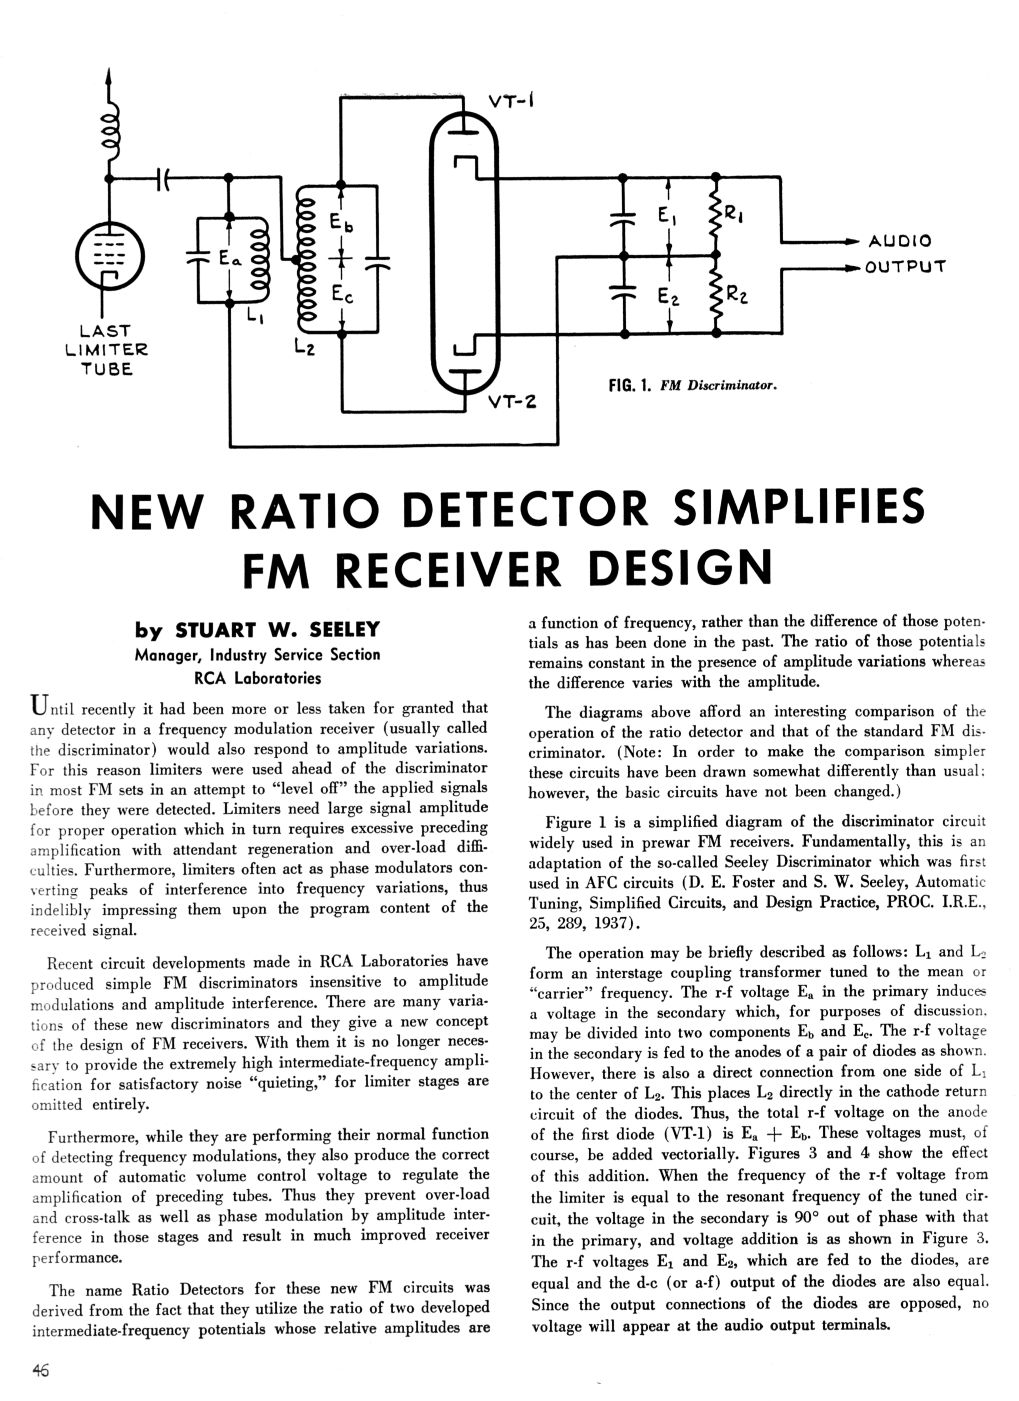 Ratio Detector Simplifies FM Receiver Design, page 1